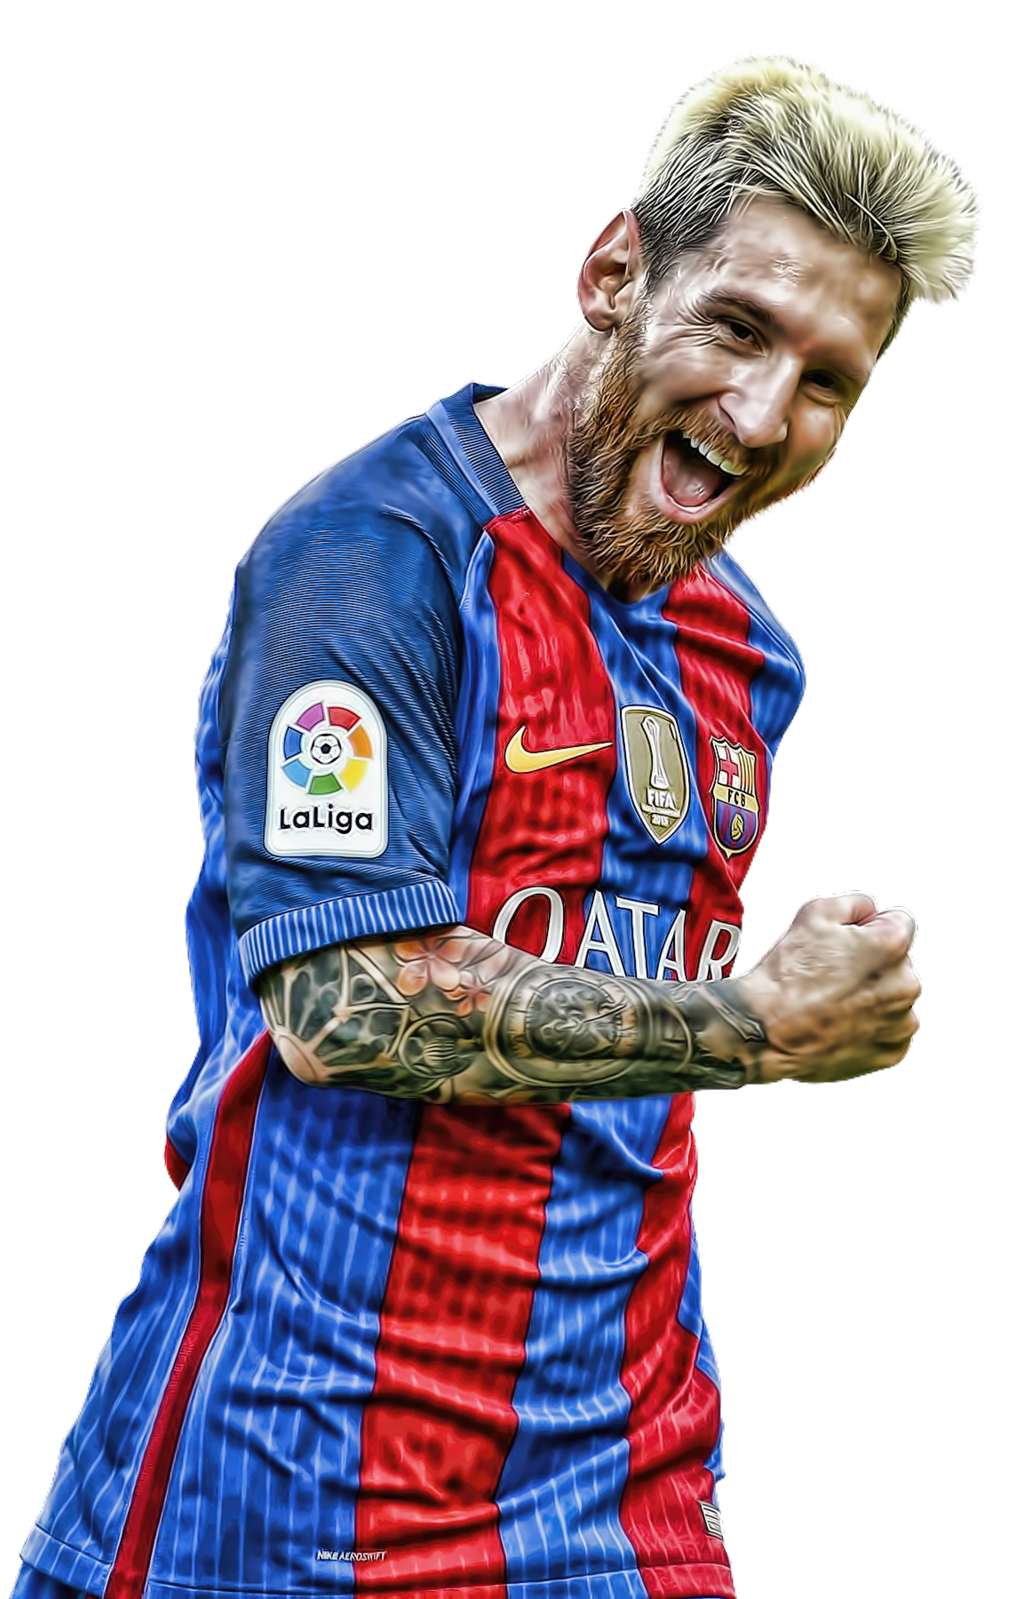 Lionel messi clipart clipart freeuse library Lionel Messi Png Happy Smile Fc Barca Clipart clipart freeuse library